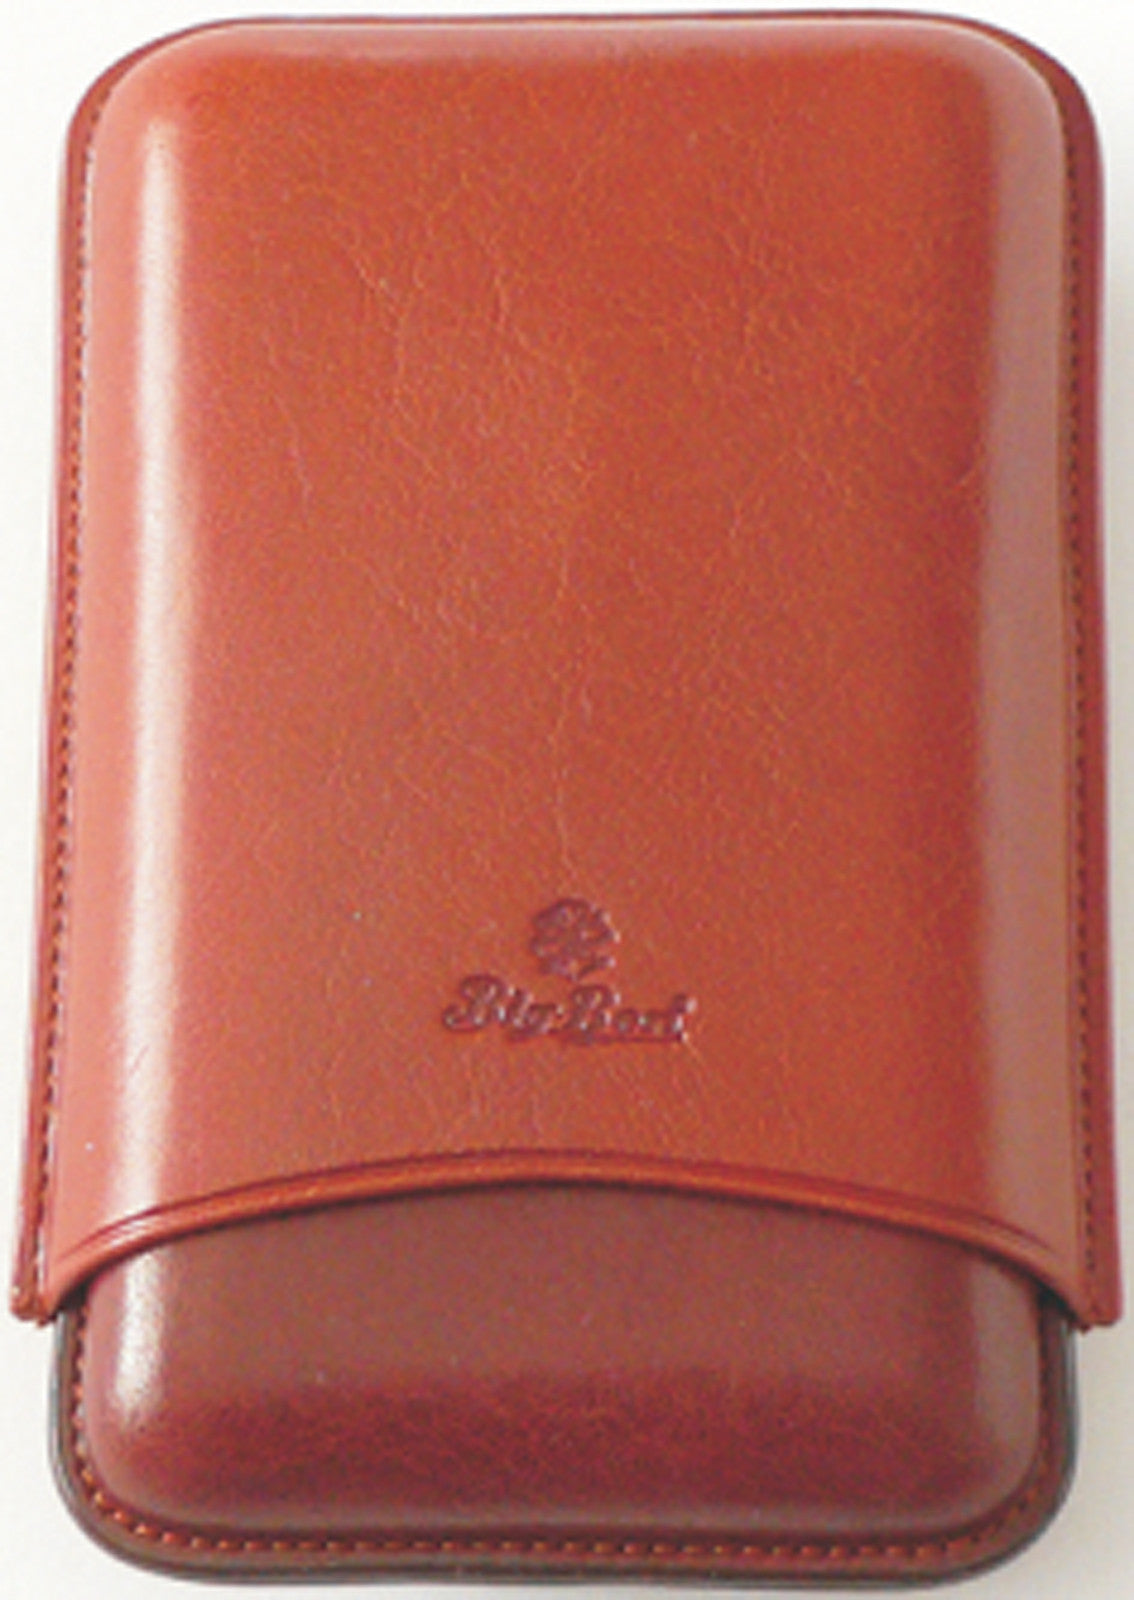 BigBen genuine leather cigar case 3 robusto 125 mm tan-tob 656.121.355